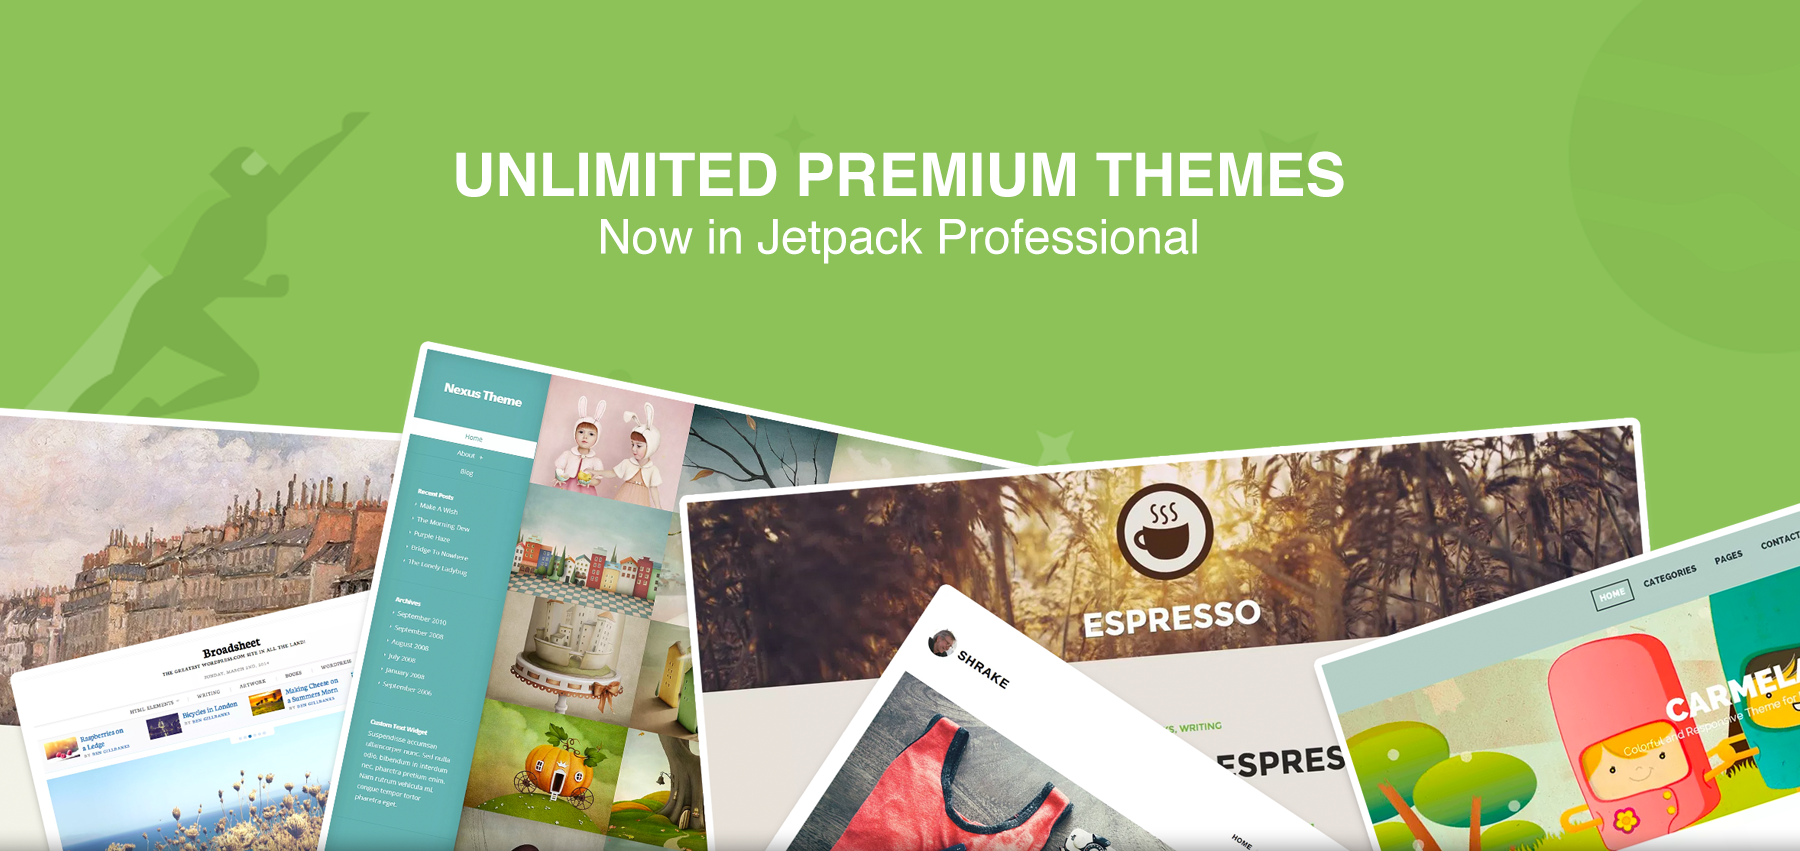 Introducing Unlimited Premium Themes (and a 50% introductory discount)